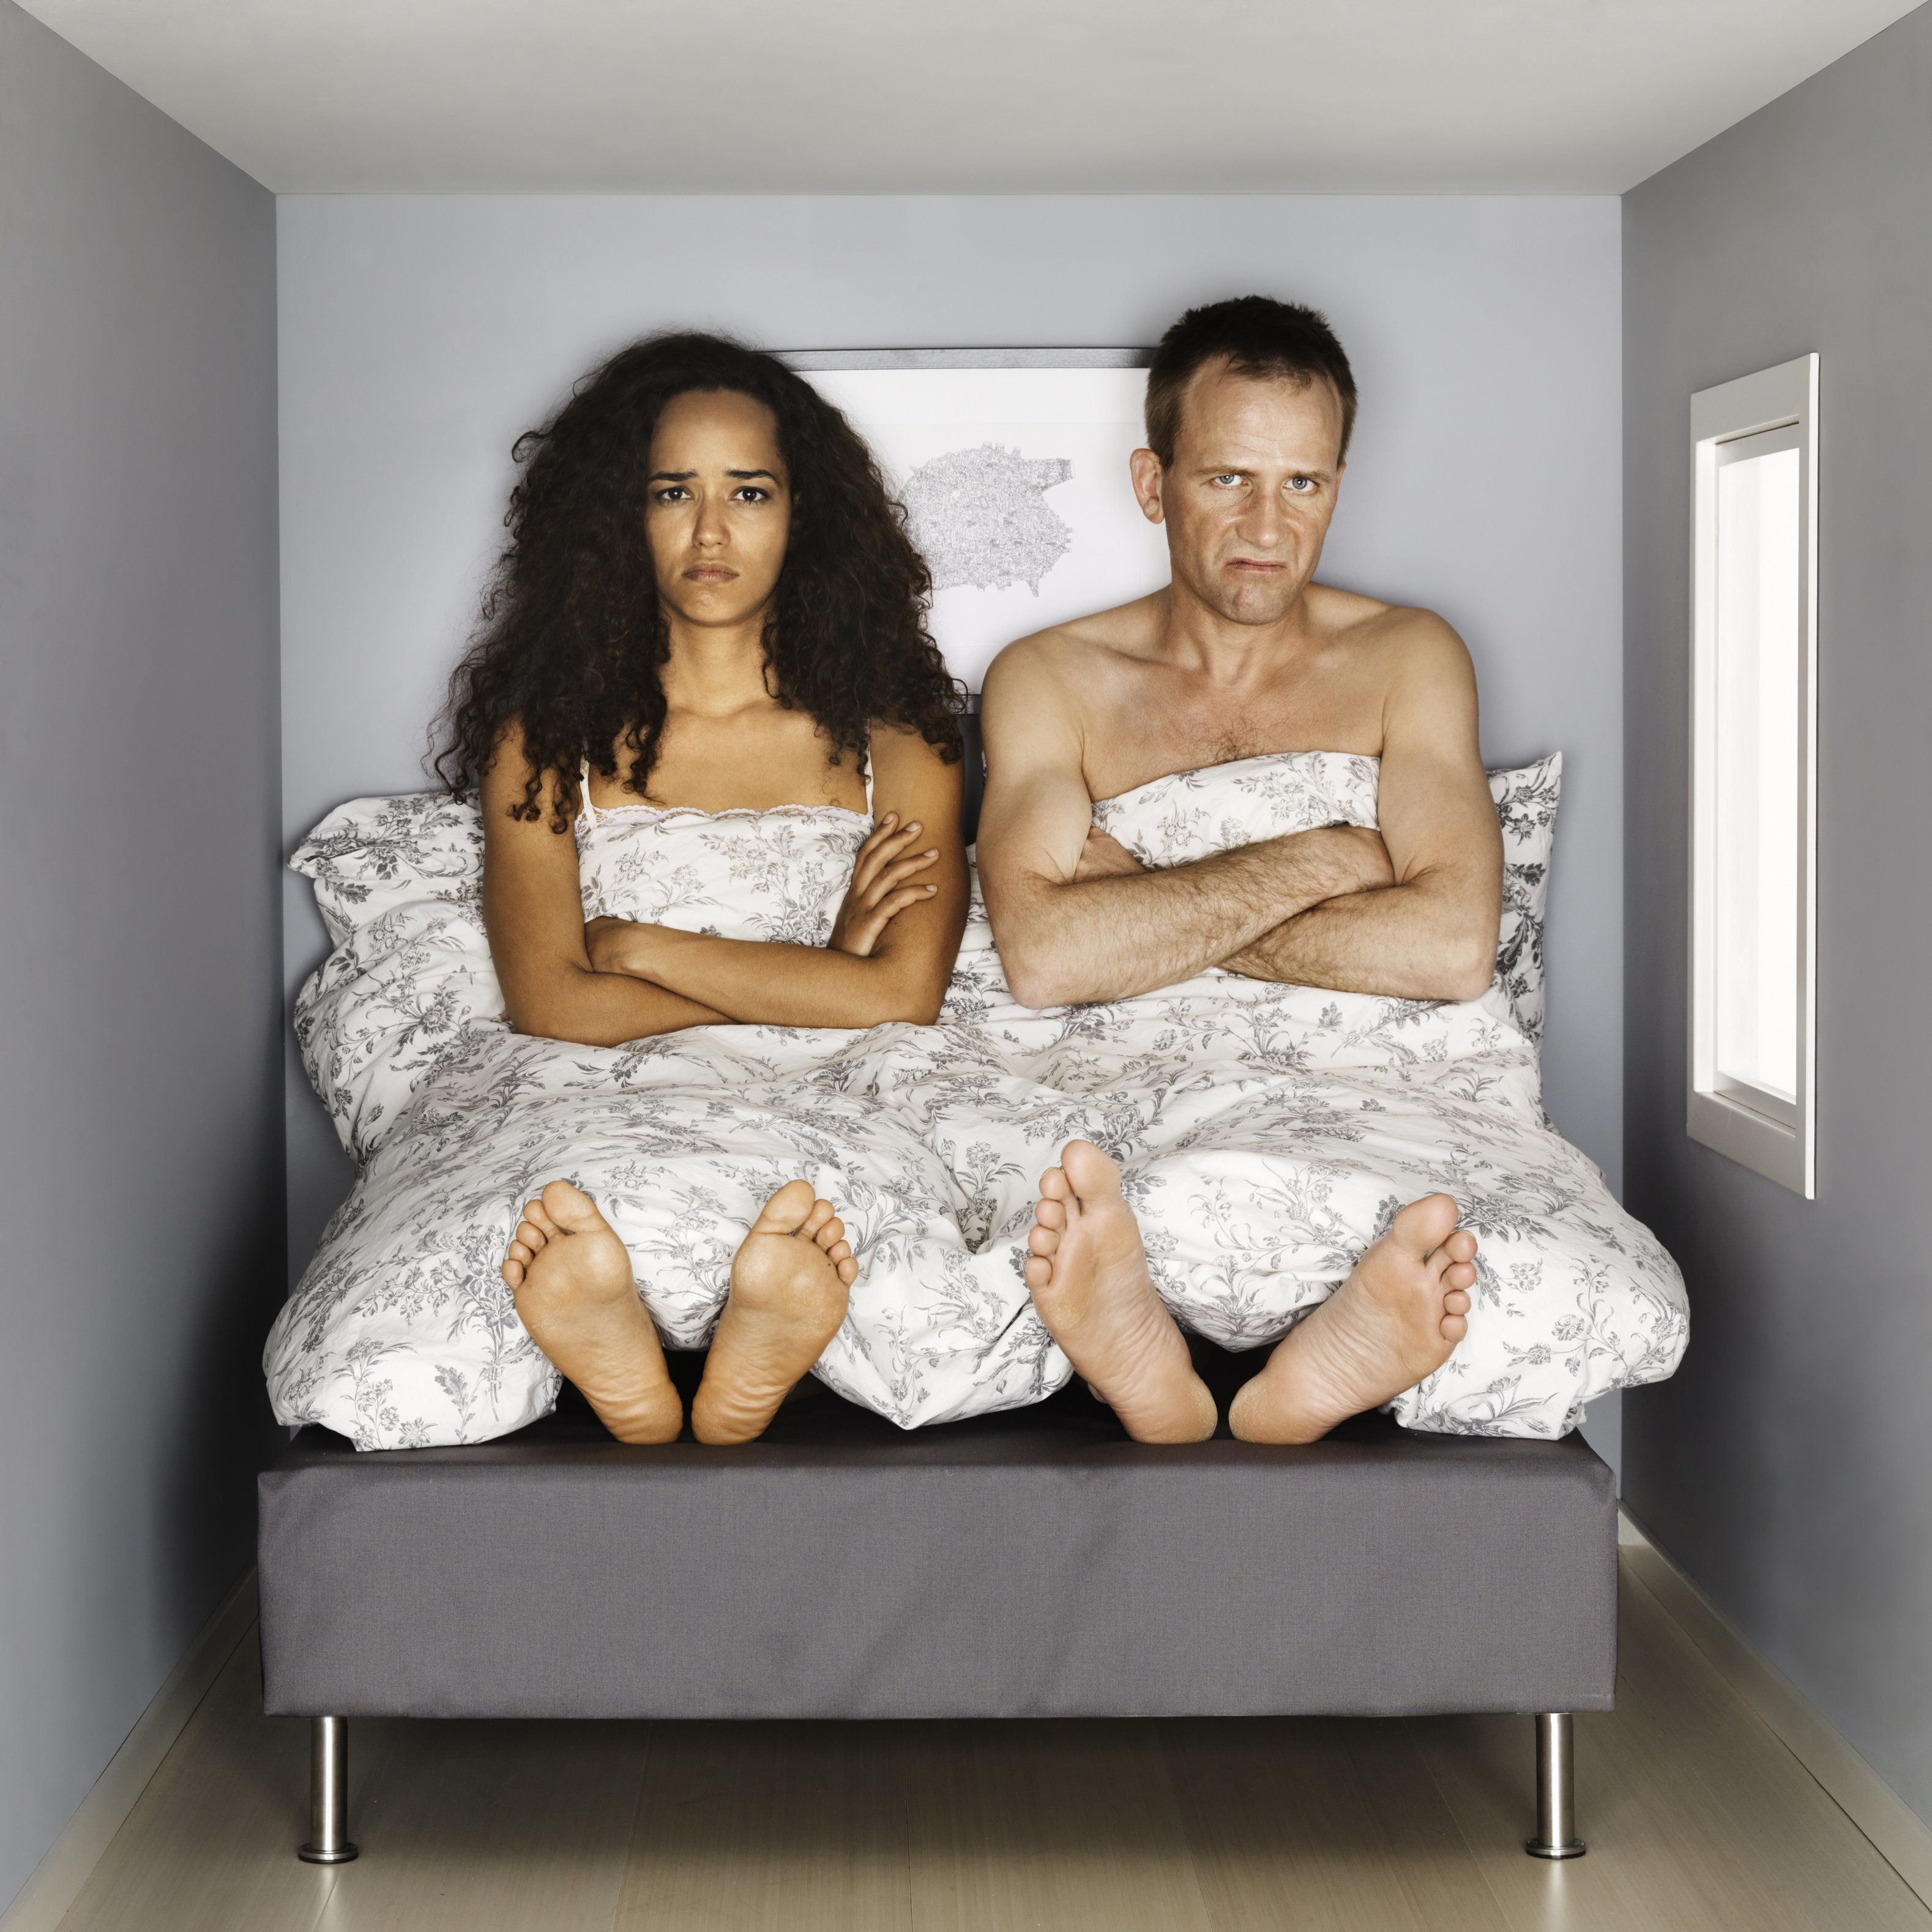 Therapists say going to bed angry is actually the smarter choice in somecases.